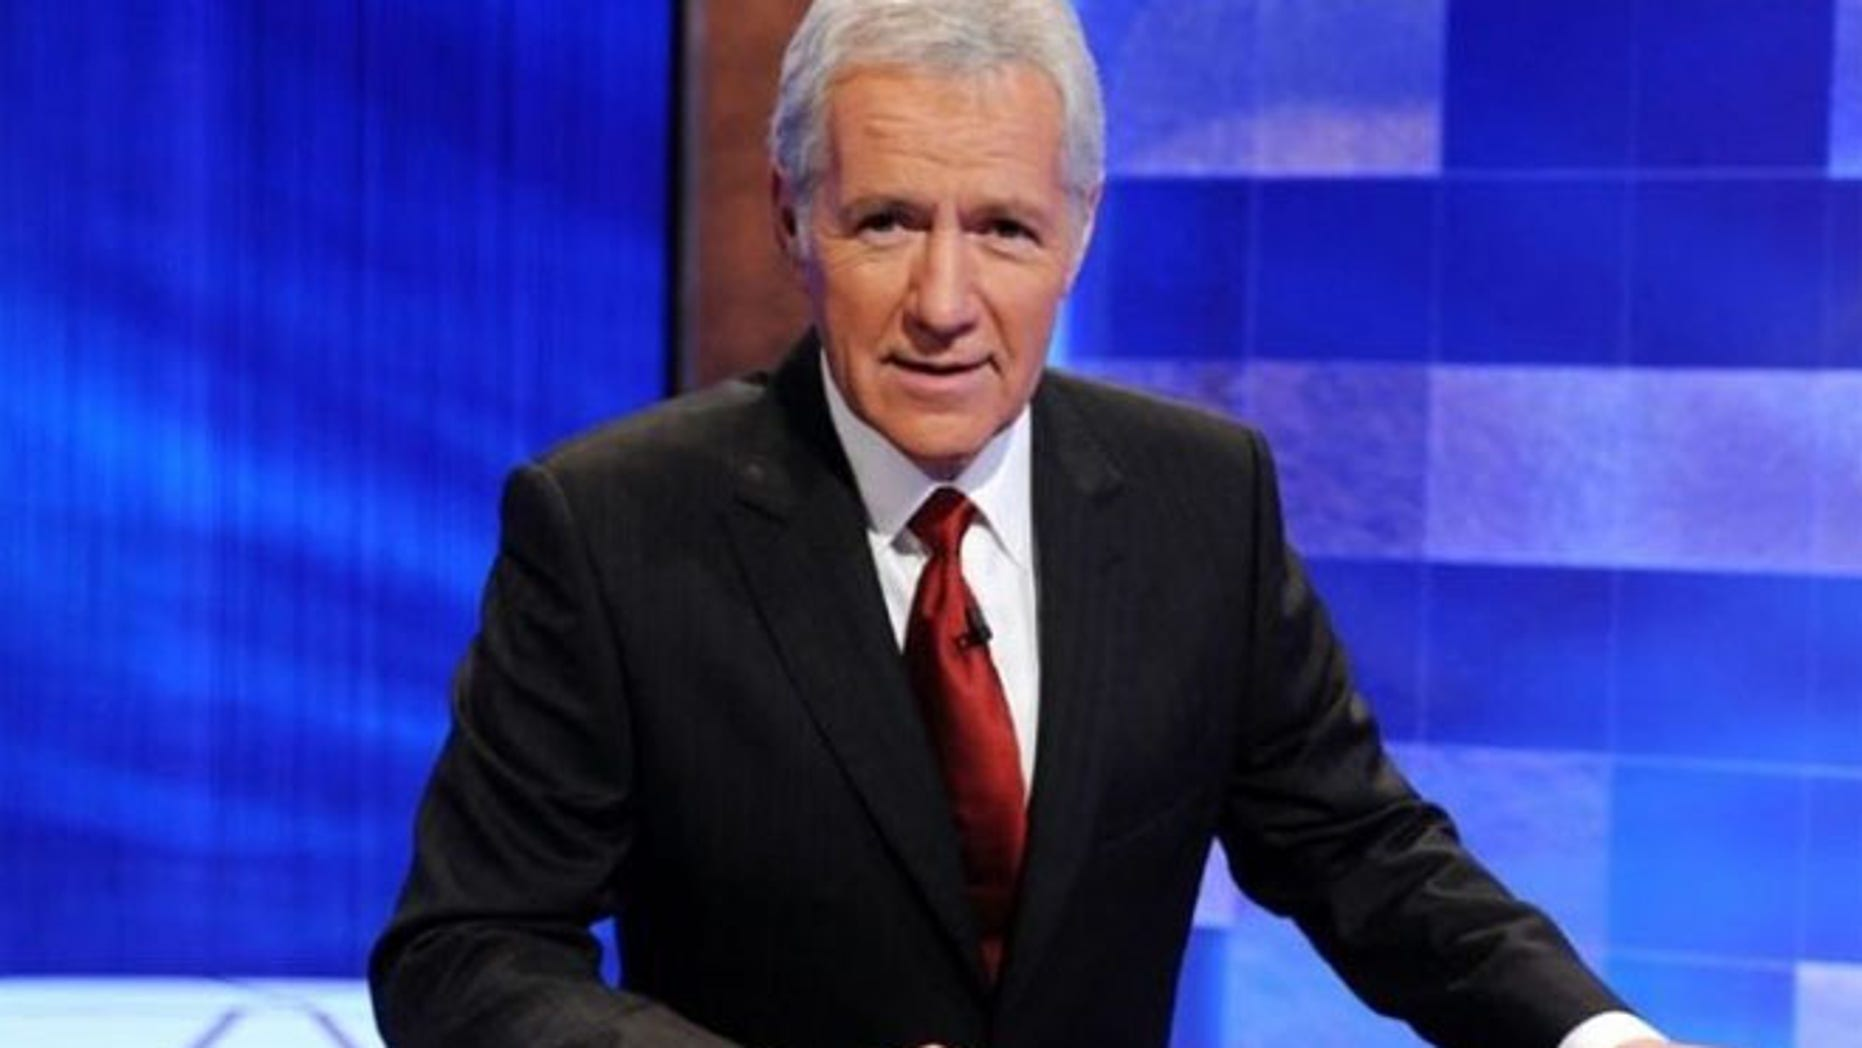 Alex Trebek appeared to not notice that one of the show's contestants gave him the middle finger.